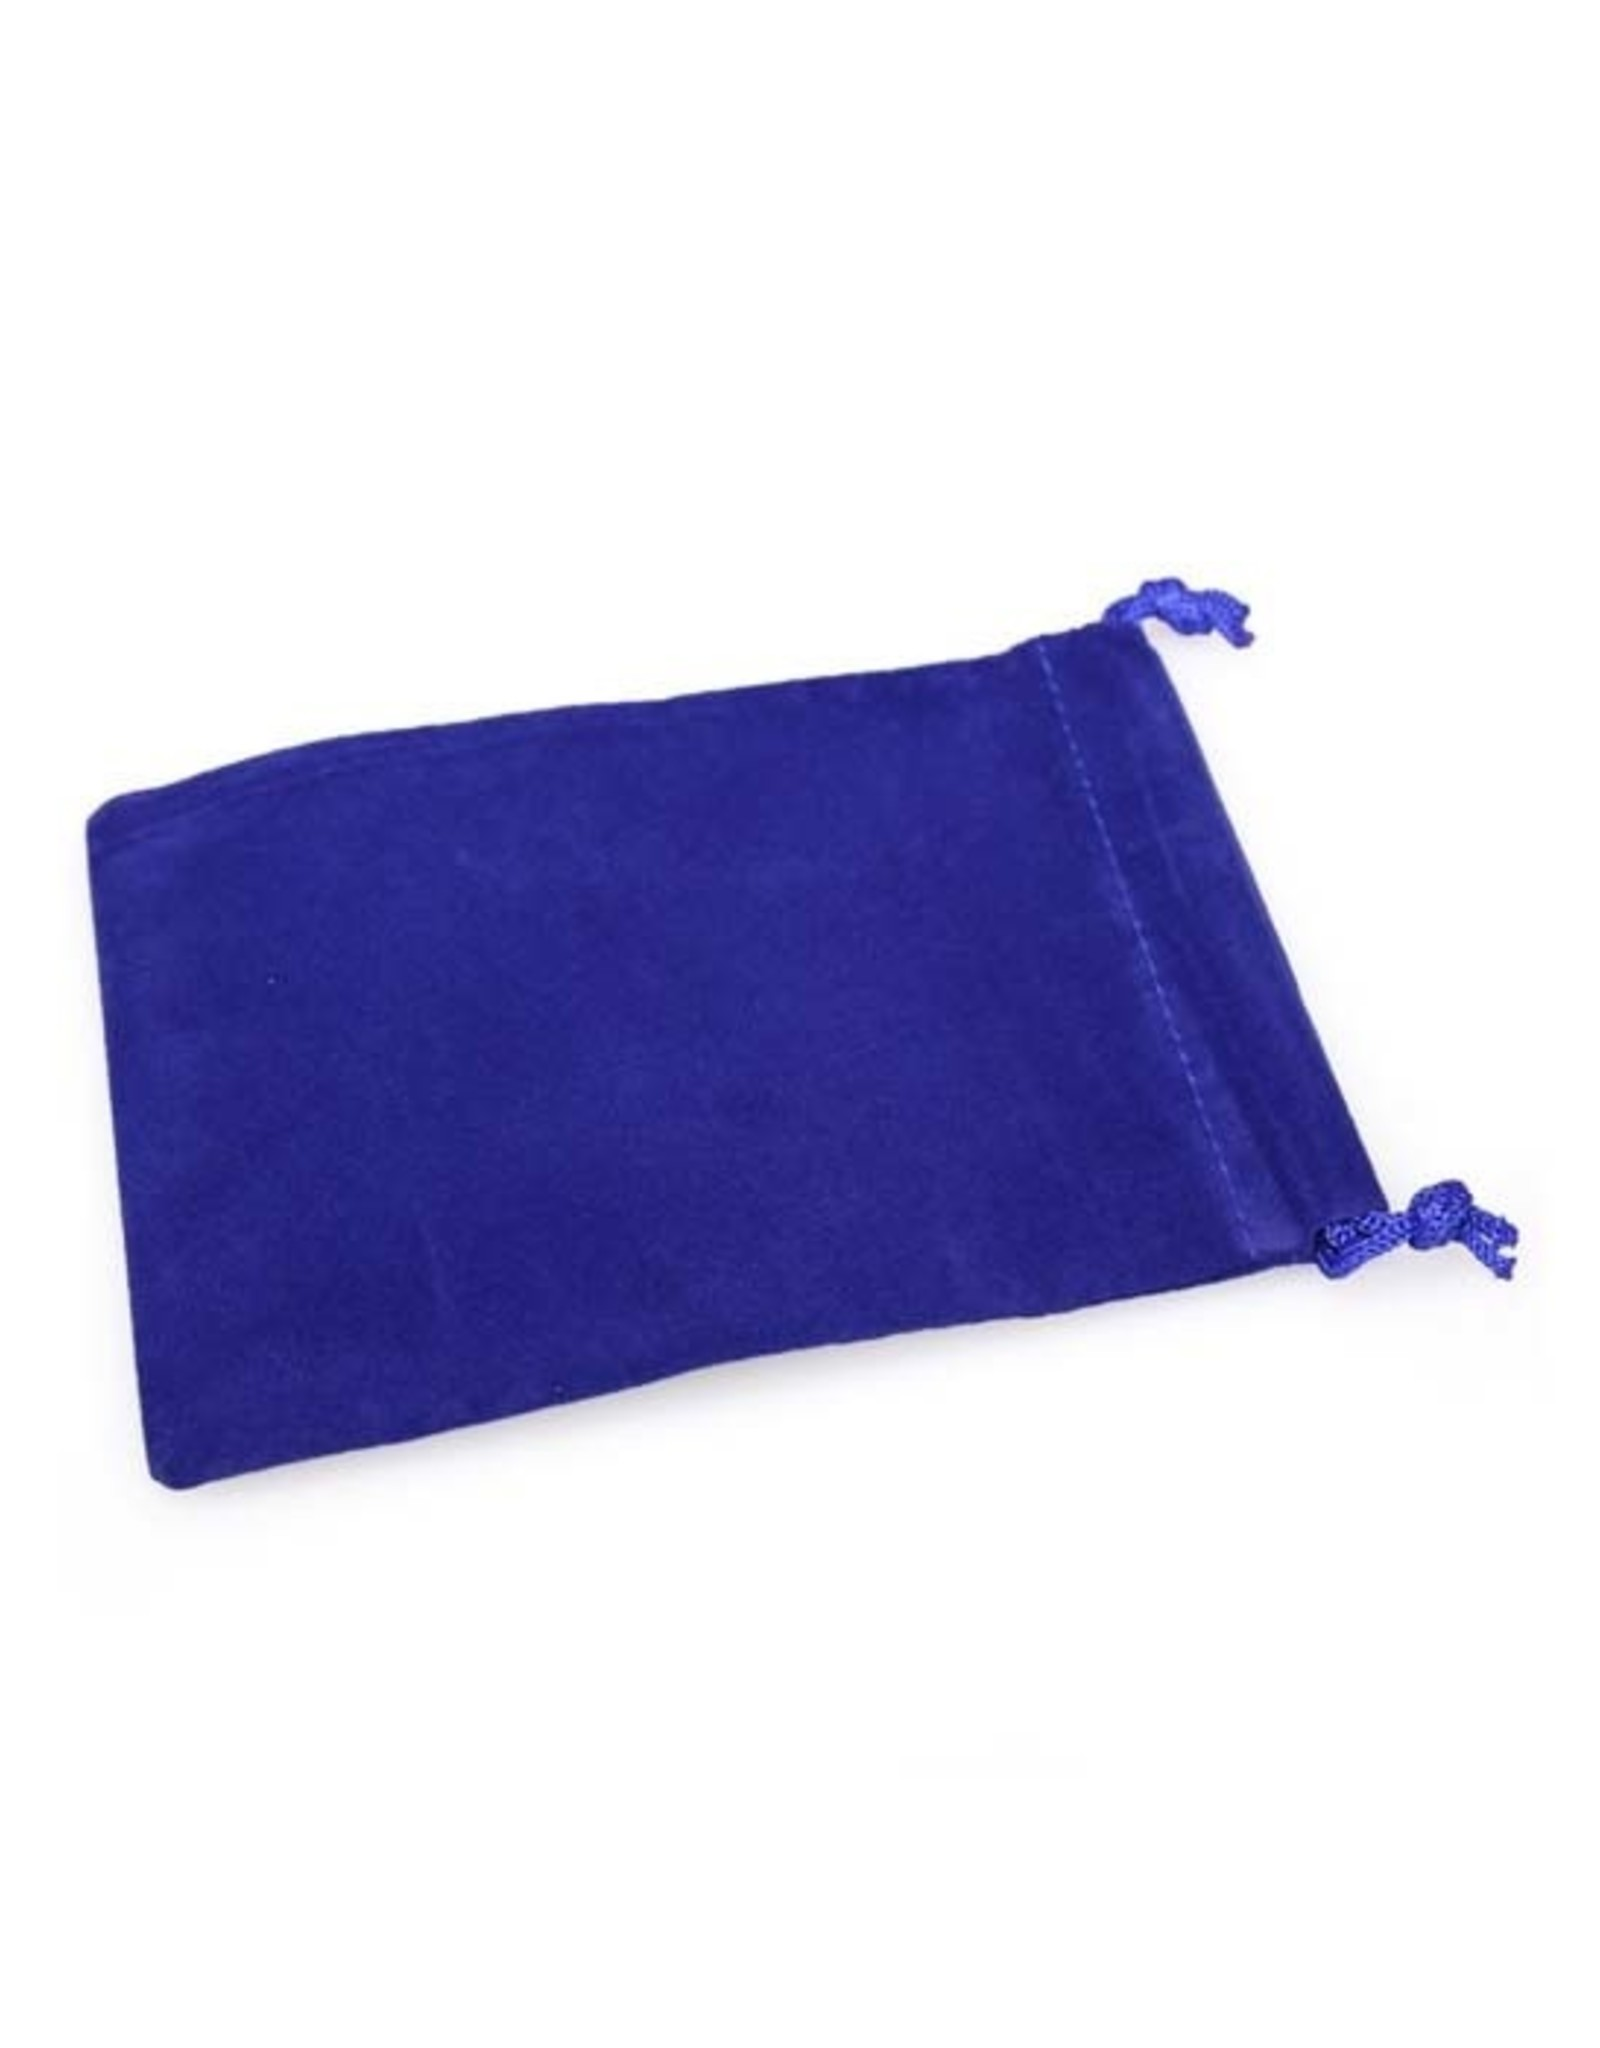 Chessex Chessex: Dice Bag - Small - Royal Blue